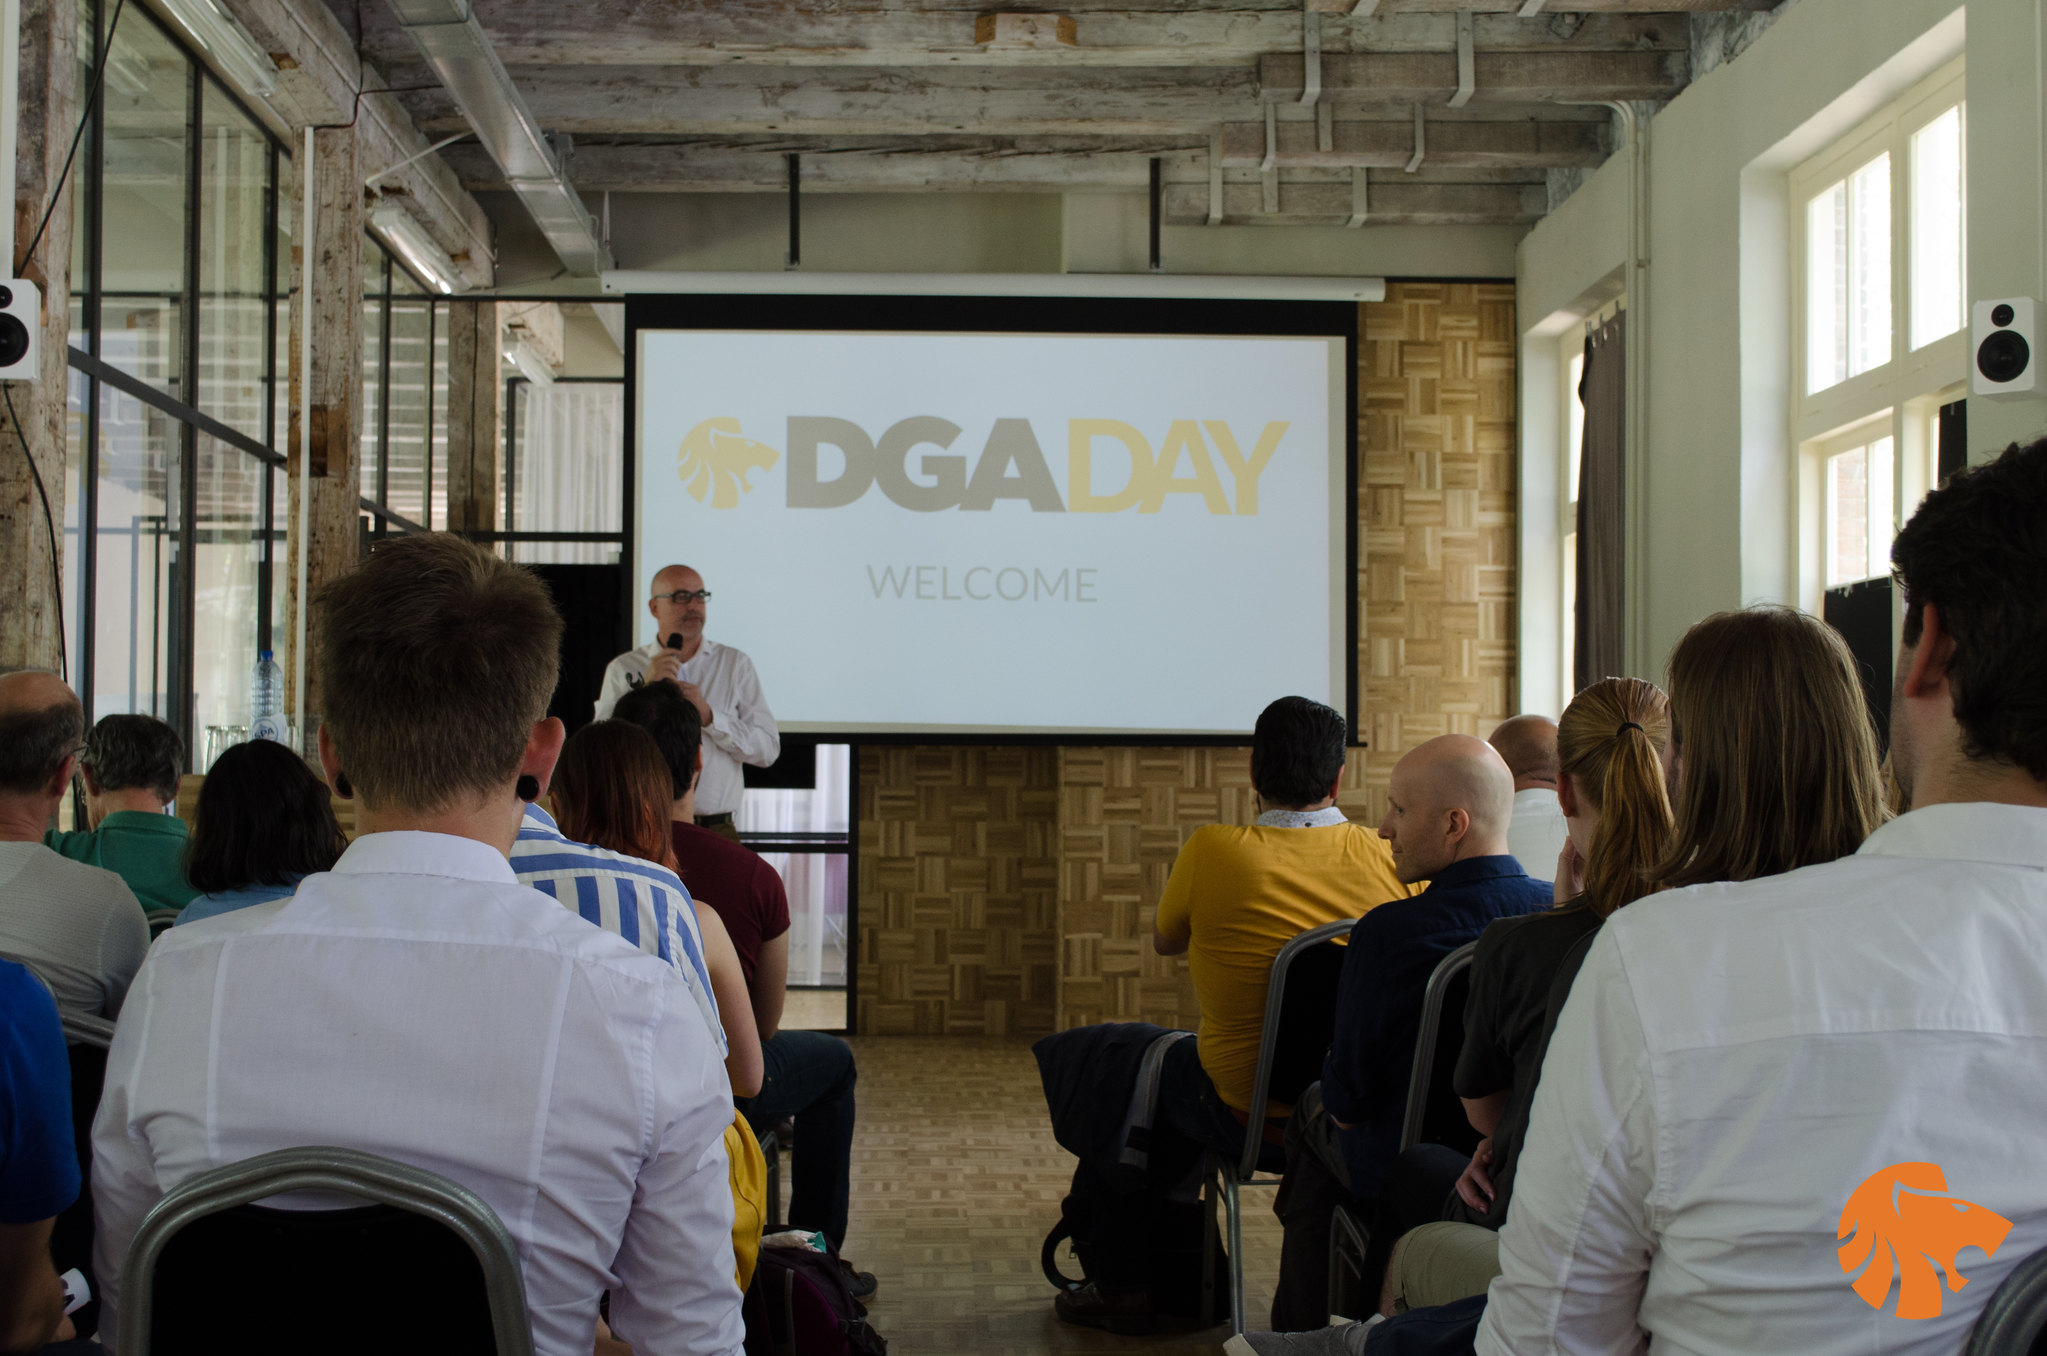 DGA DAY, July 2017